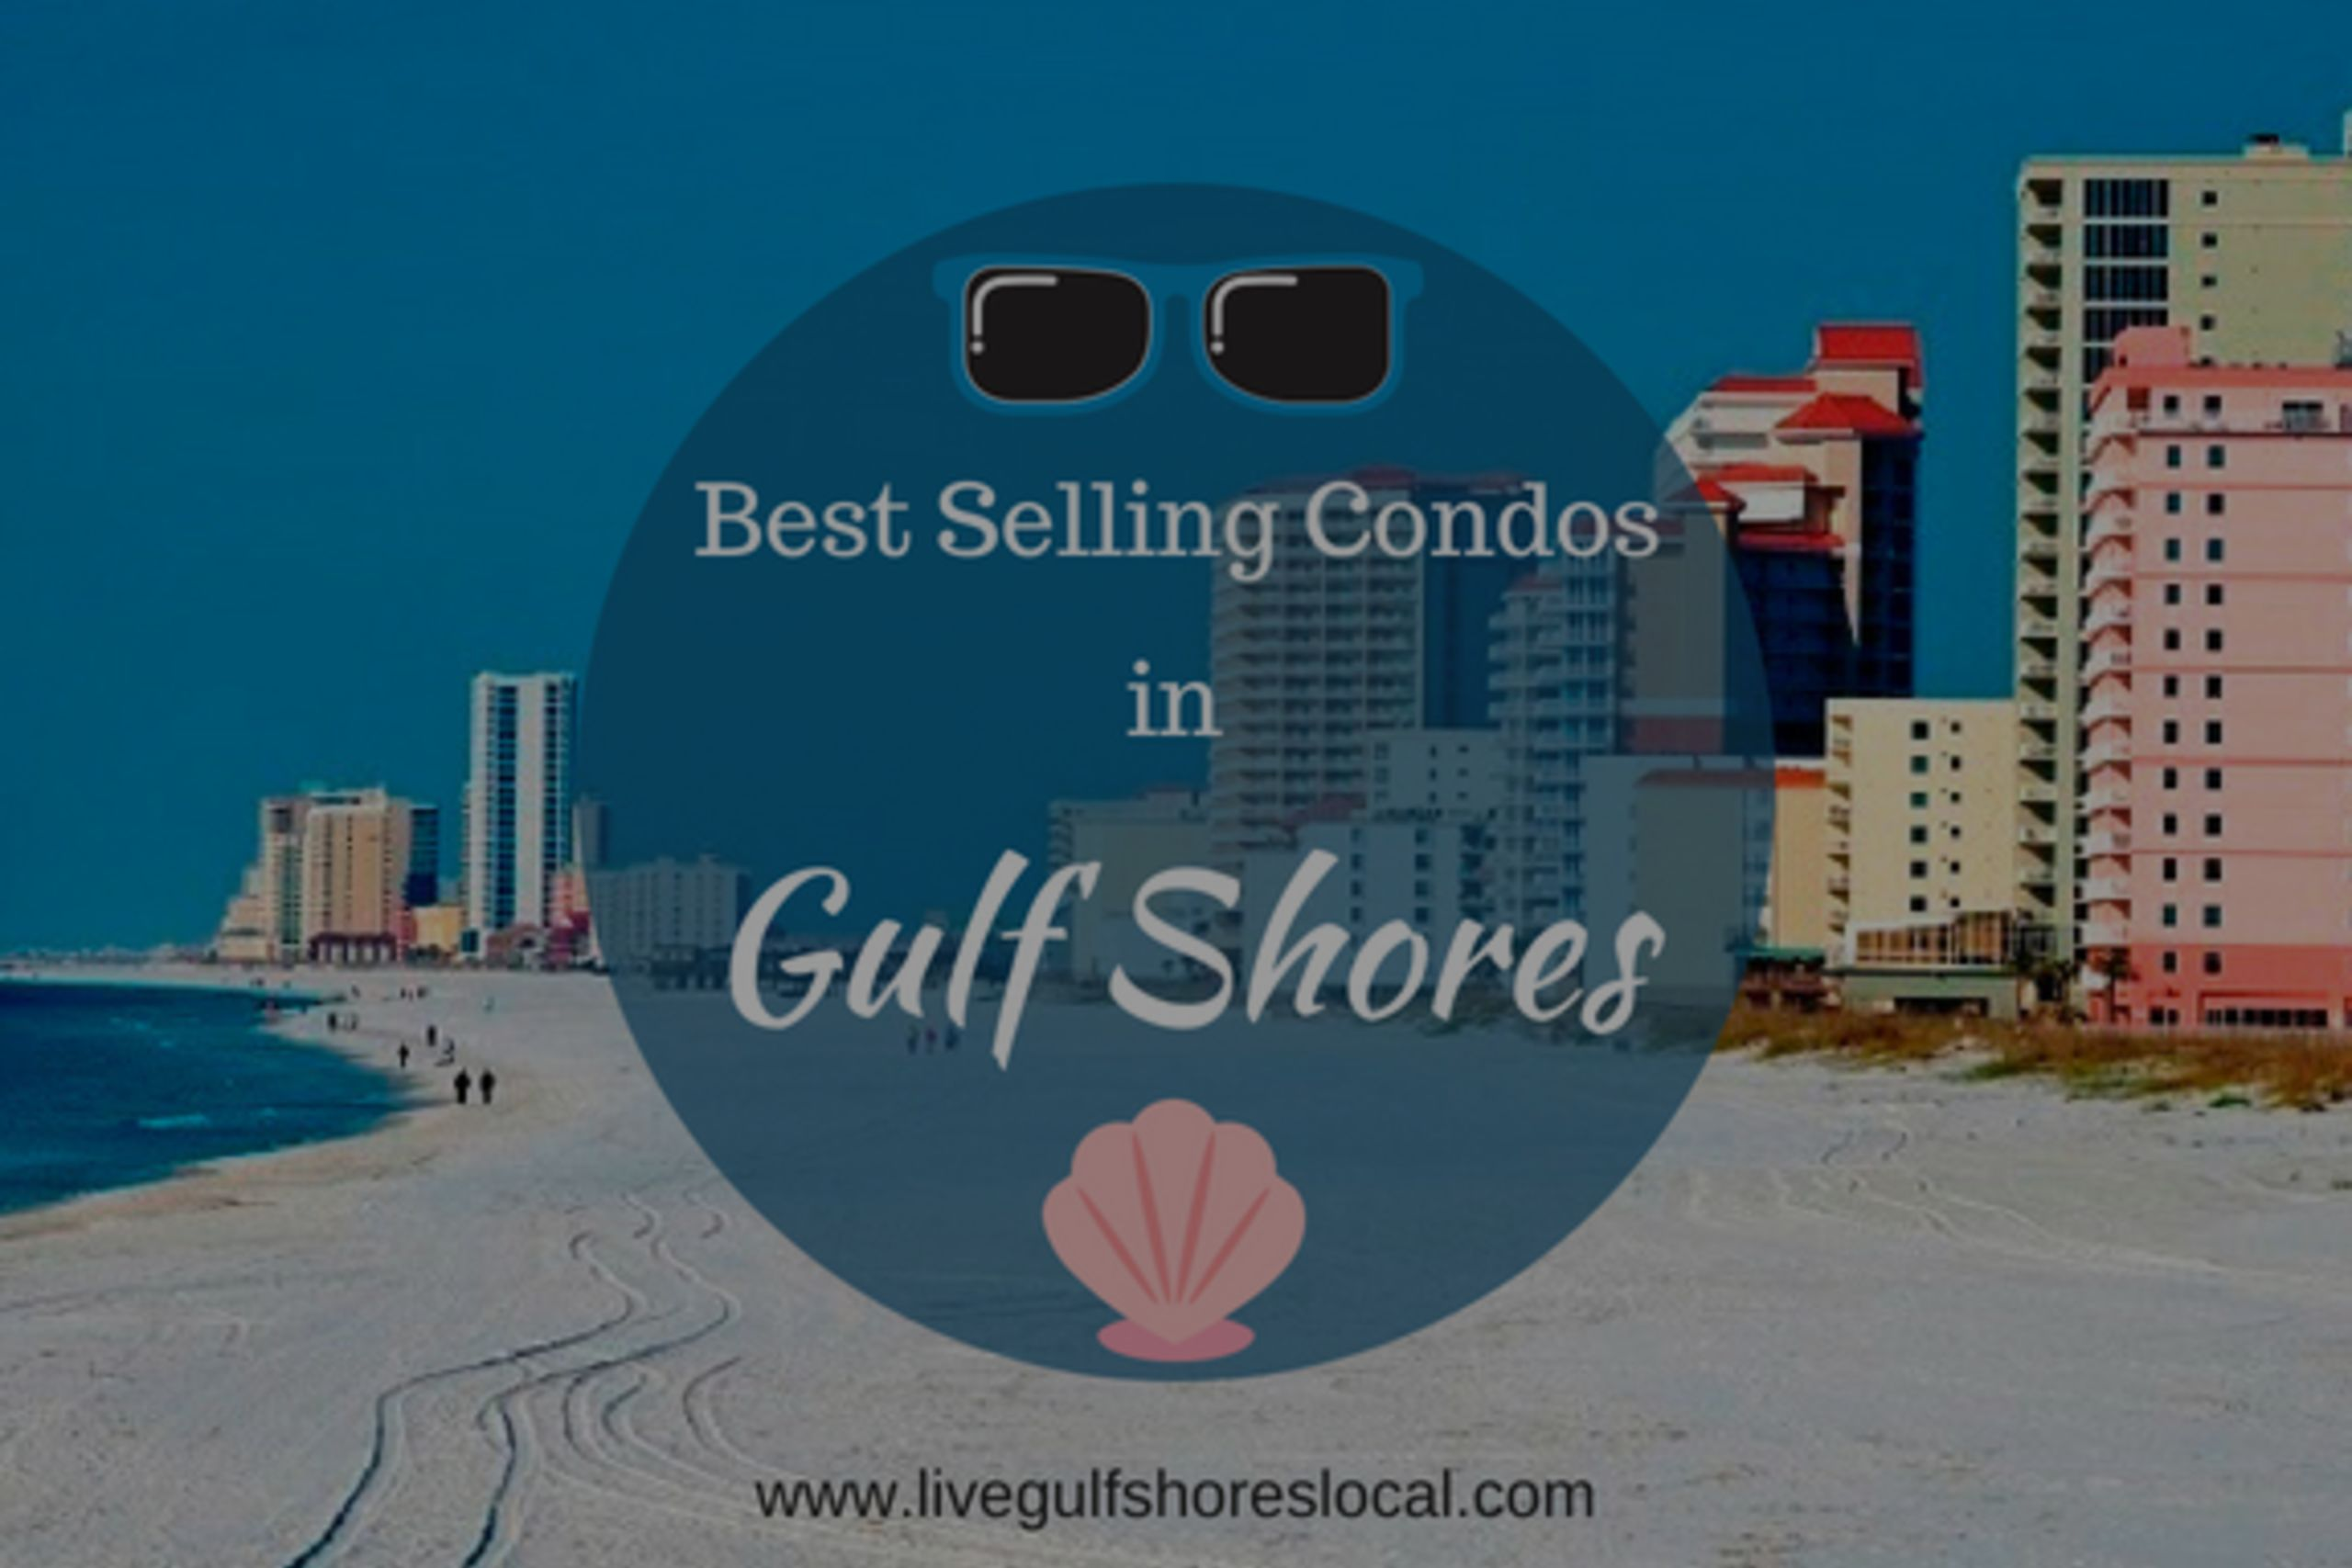 Best Selling Condos in Gulf Shores – April 2018